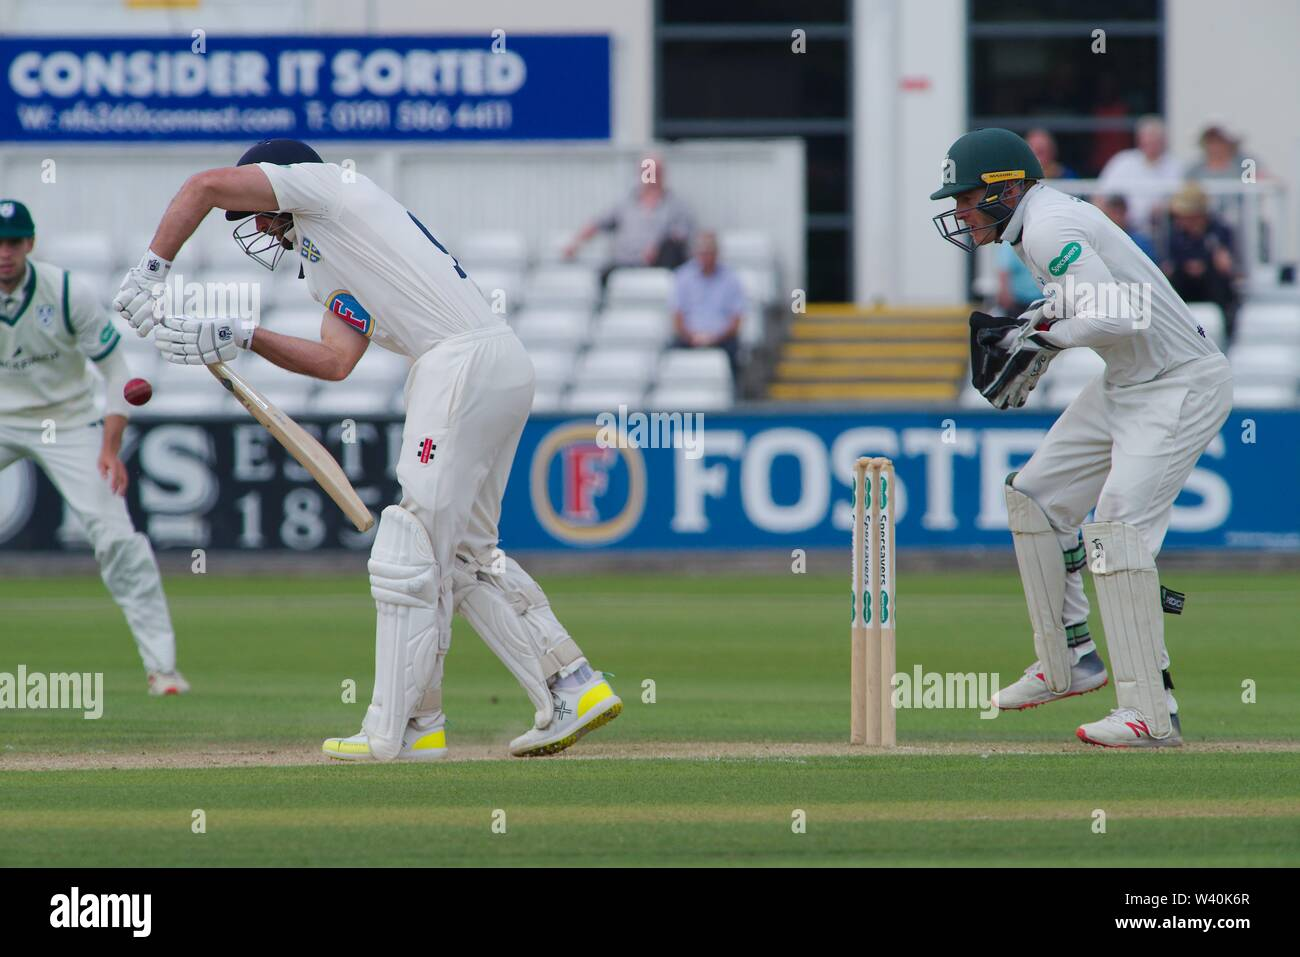 Chester le Street, England, 15 July 2019. Gareth Harte batting for Durham during their Specsavers County Championship match against Worcestershire at the Emirates Riverside, Chester le Street. - Stock Image